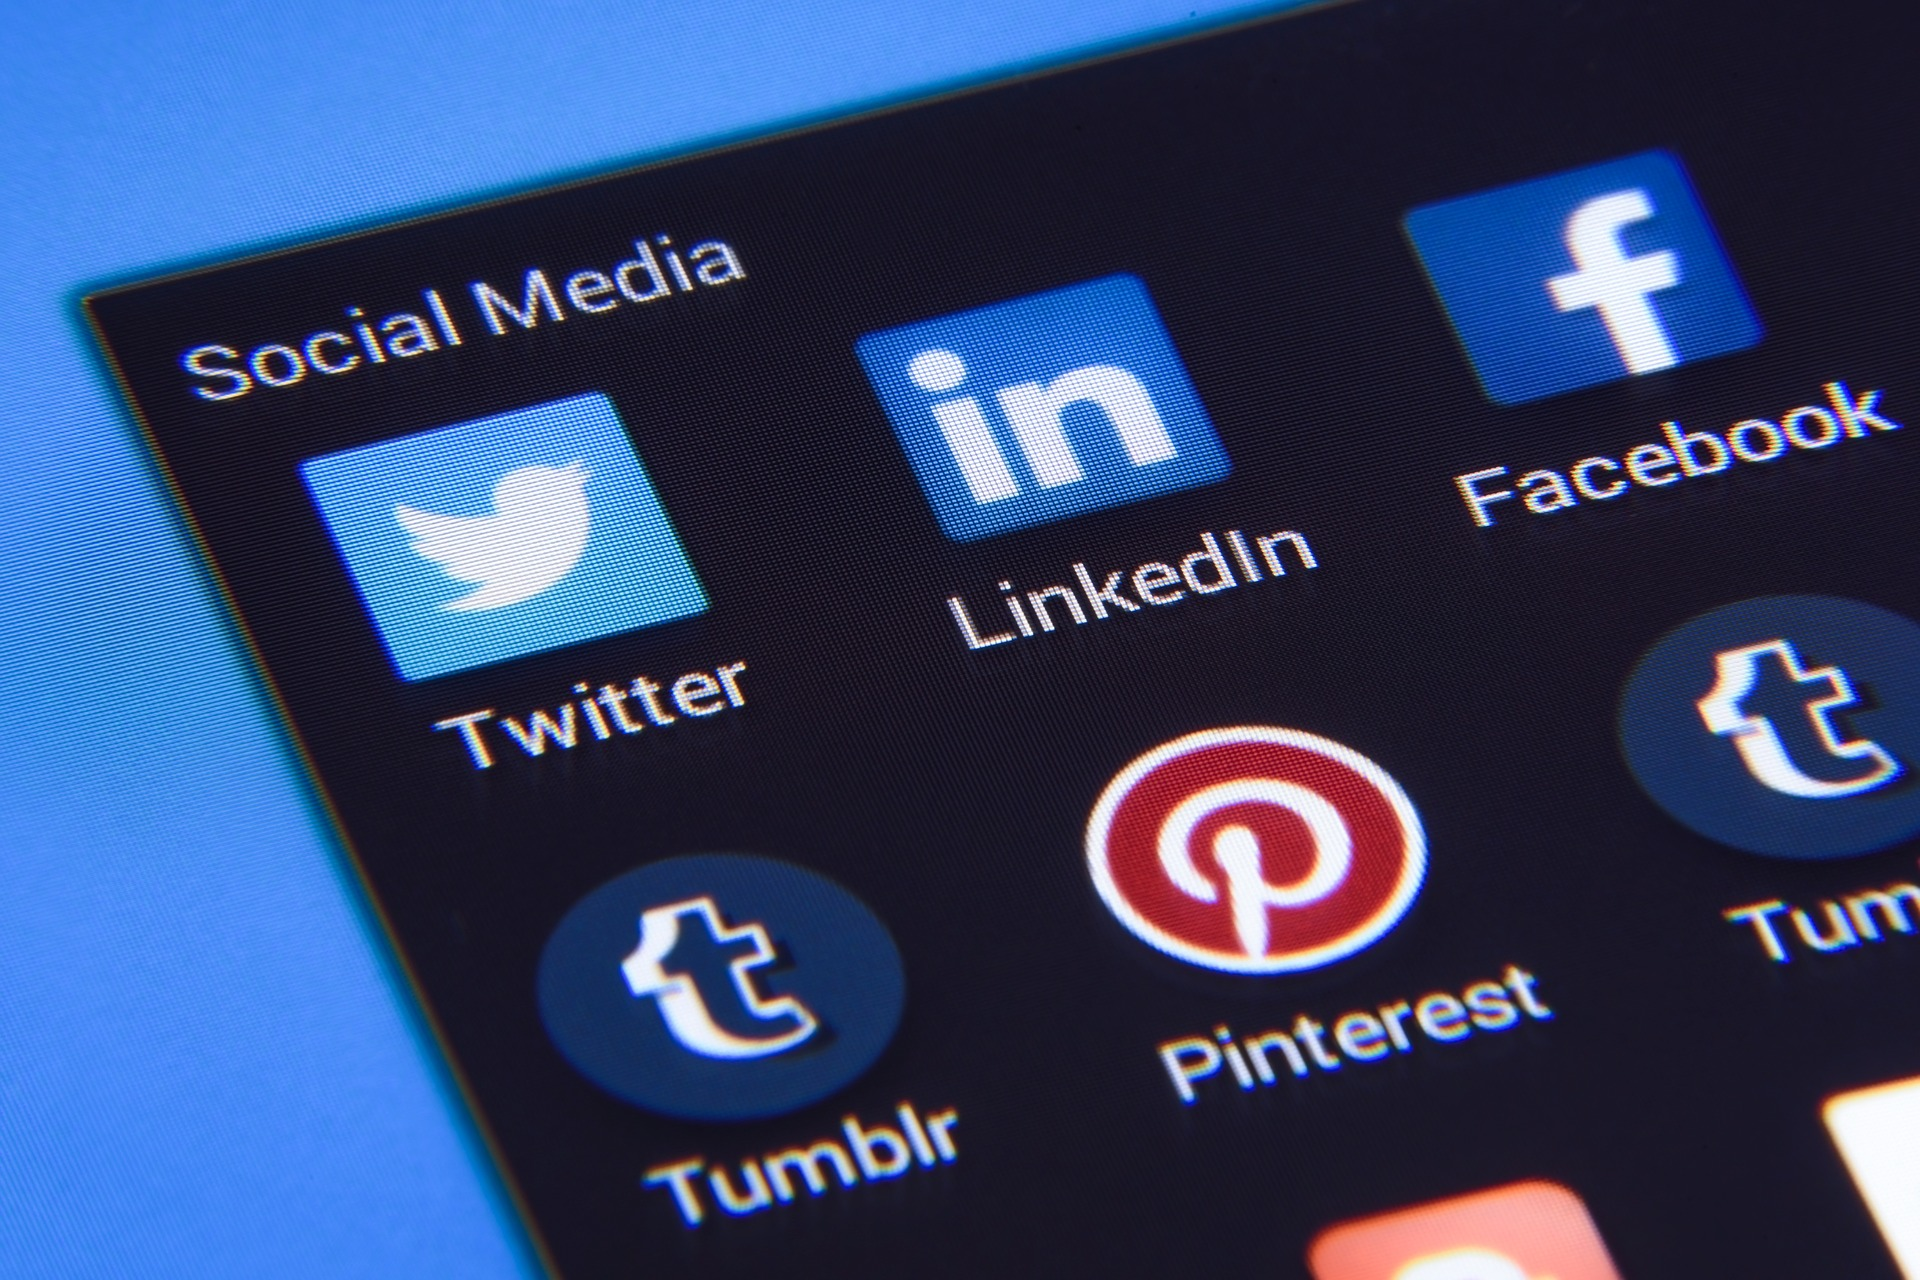 Use Smart Tools to Boost Your Social Media Marketing!